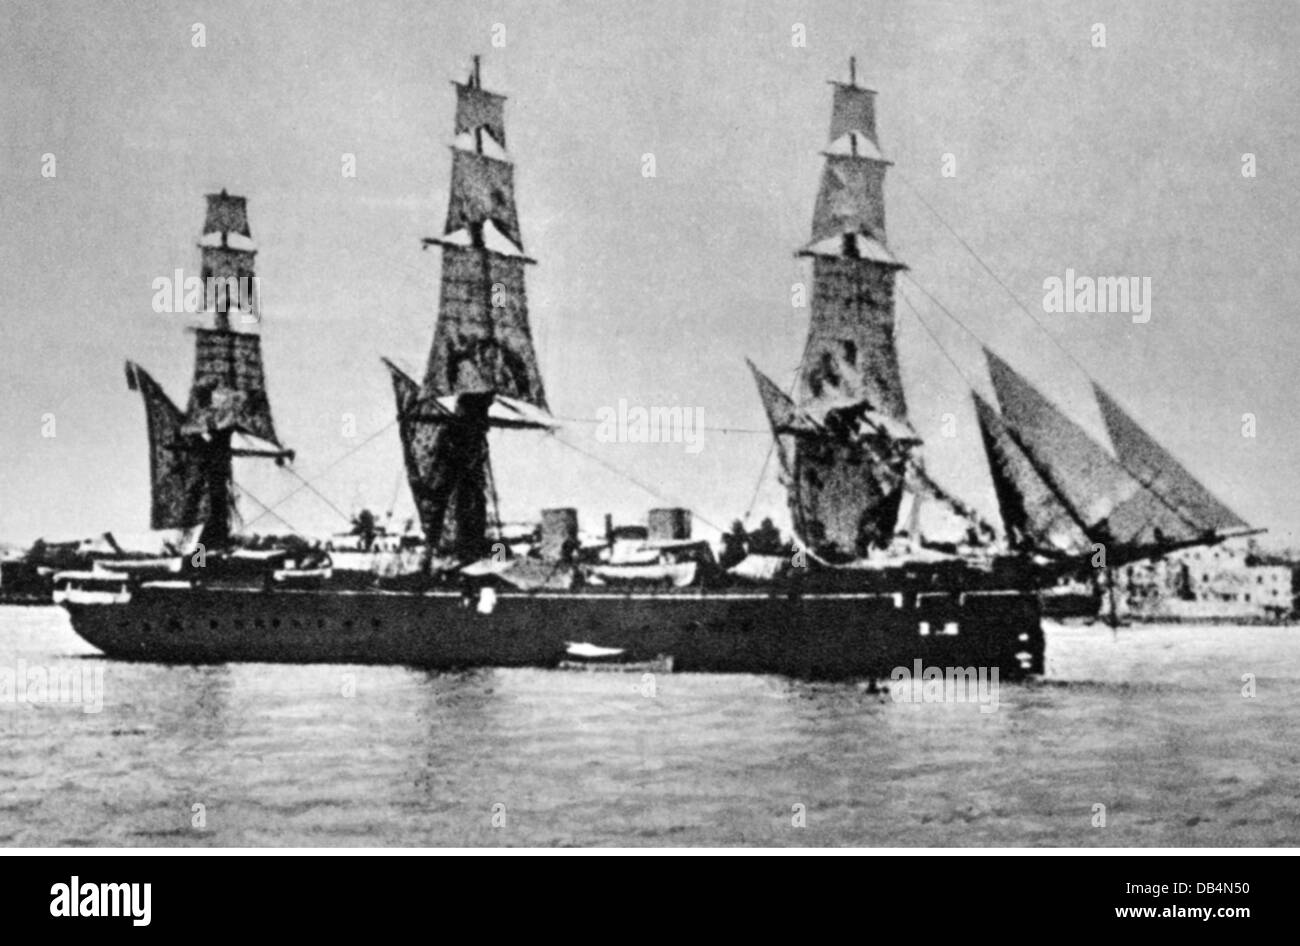 colonialism, Africa, German East Africa, corvette 'Leipzig' at Zanzibar, 1888, Additional-Rights-Clearences - Stock Image